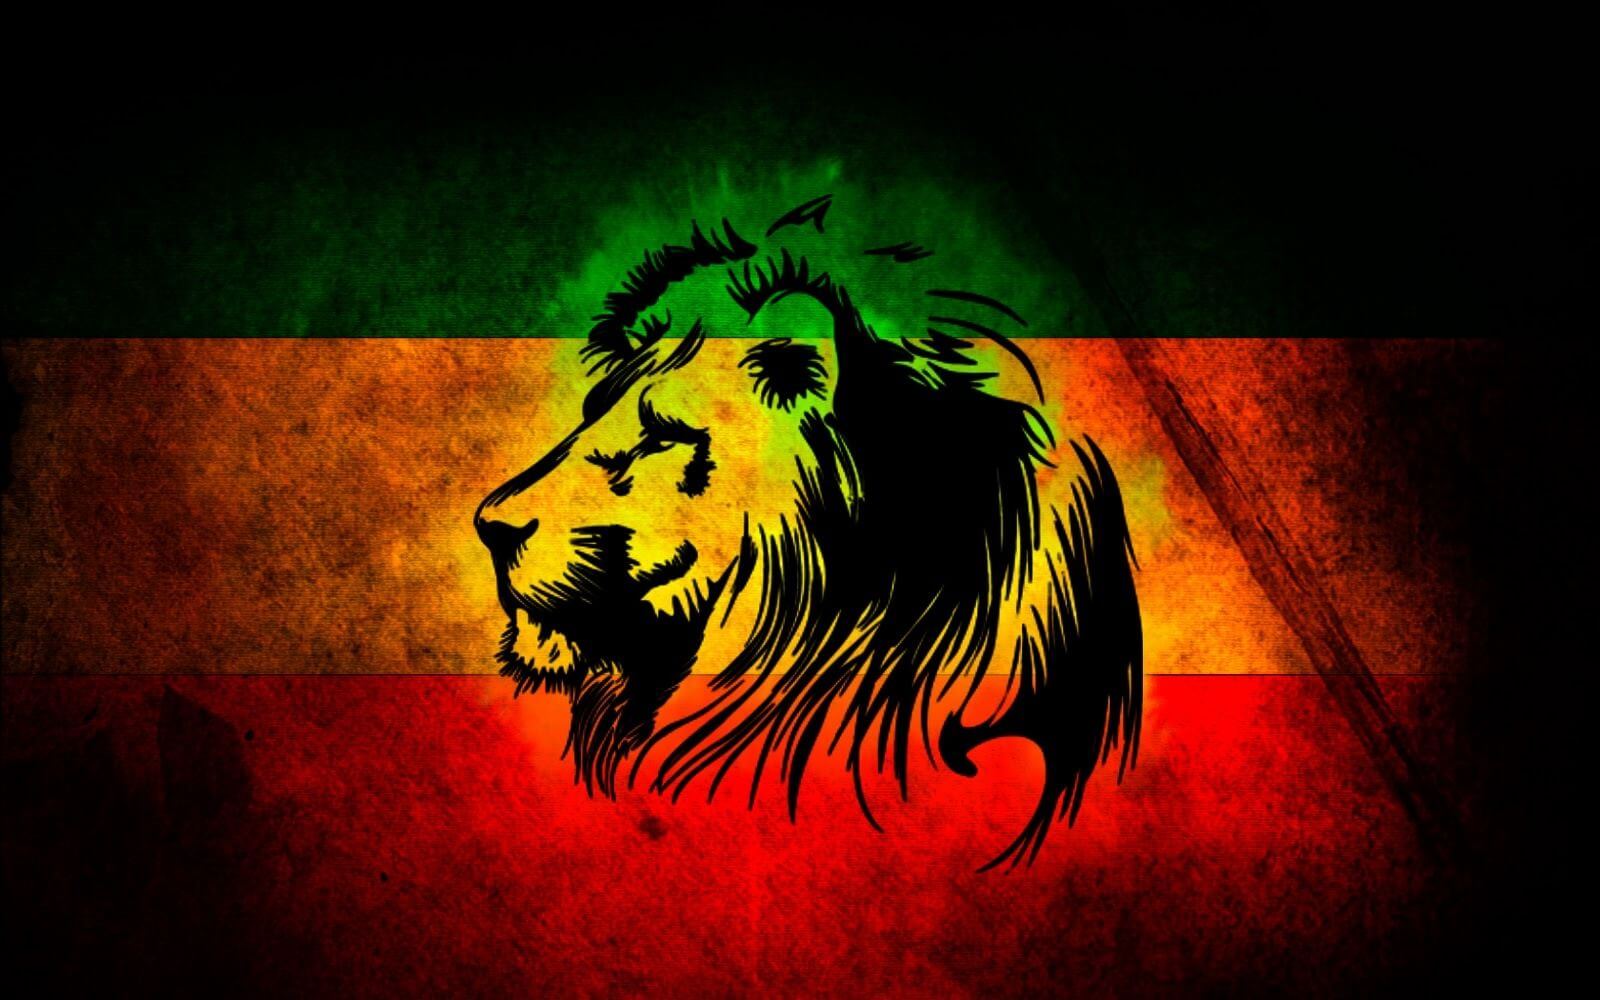 Collection of Lion Wallpaper Hd on HDWallpapers